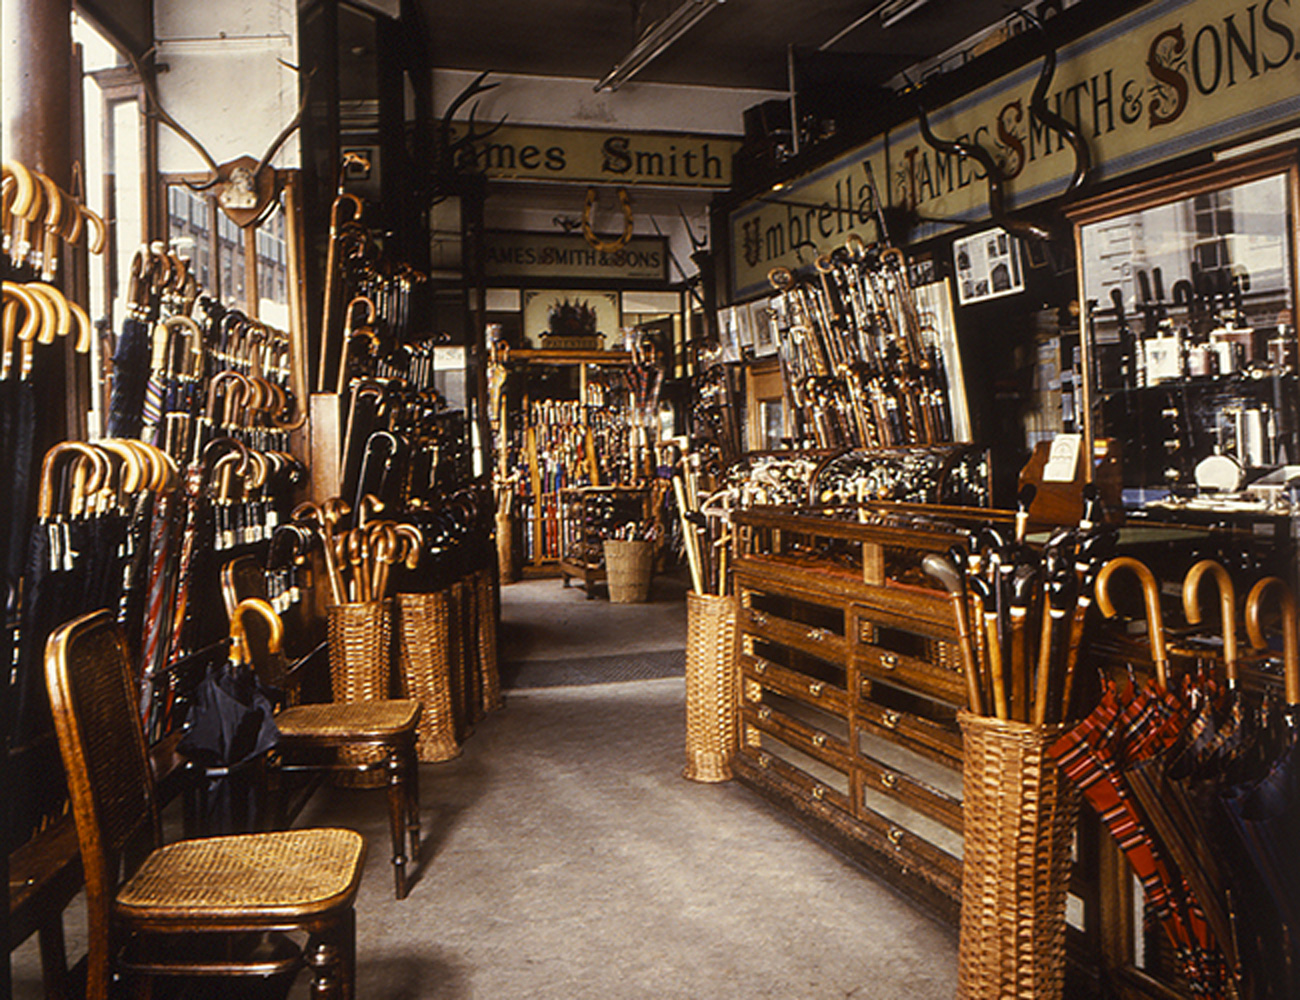 What to do in London when it rains: buy an umbrella at James Smith & Sons